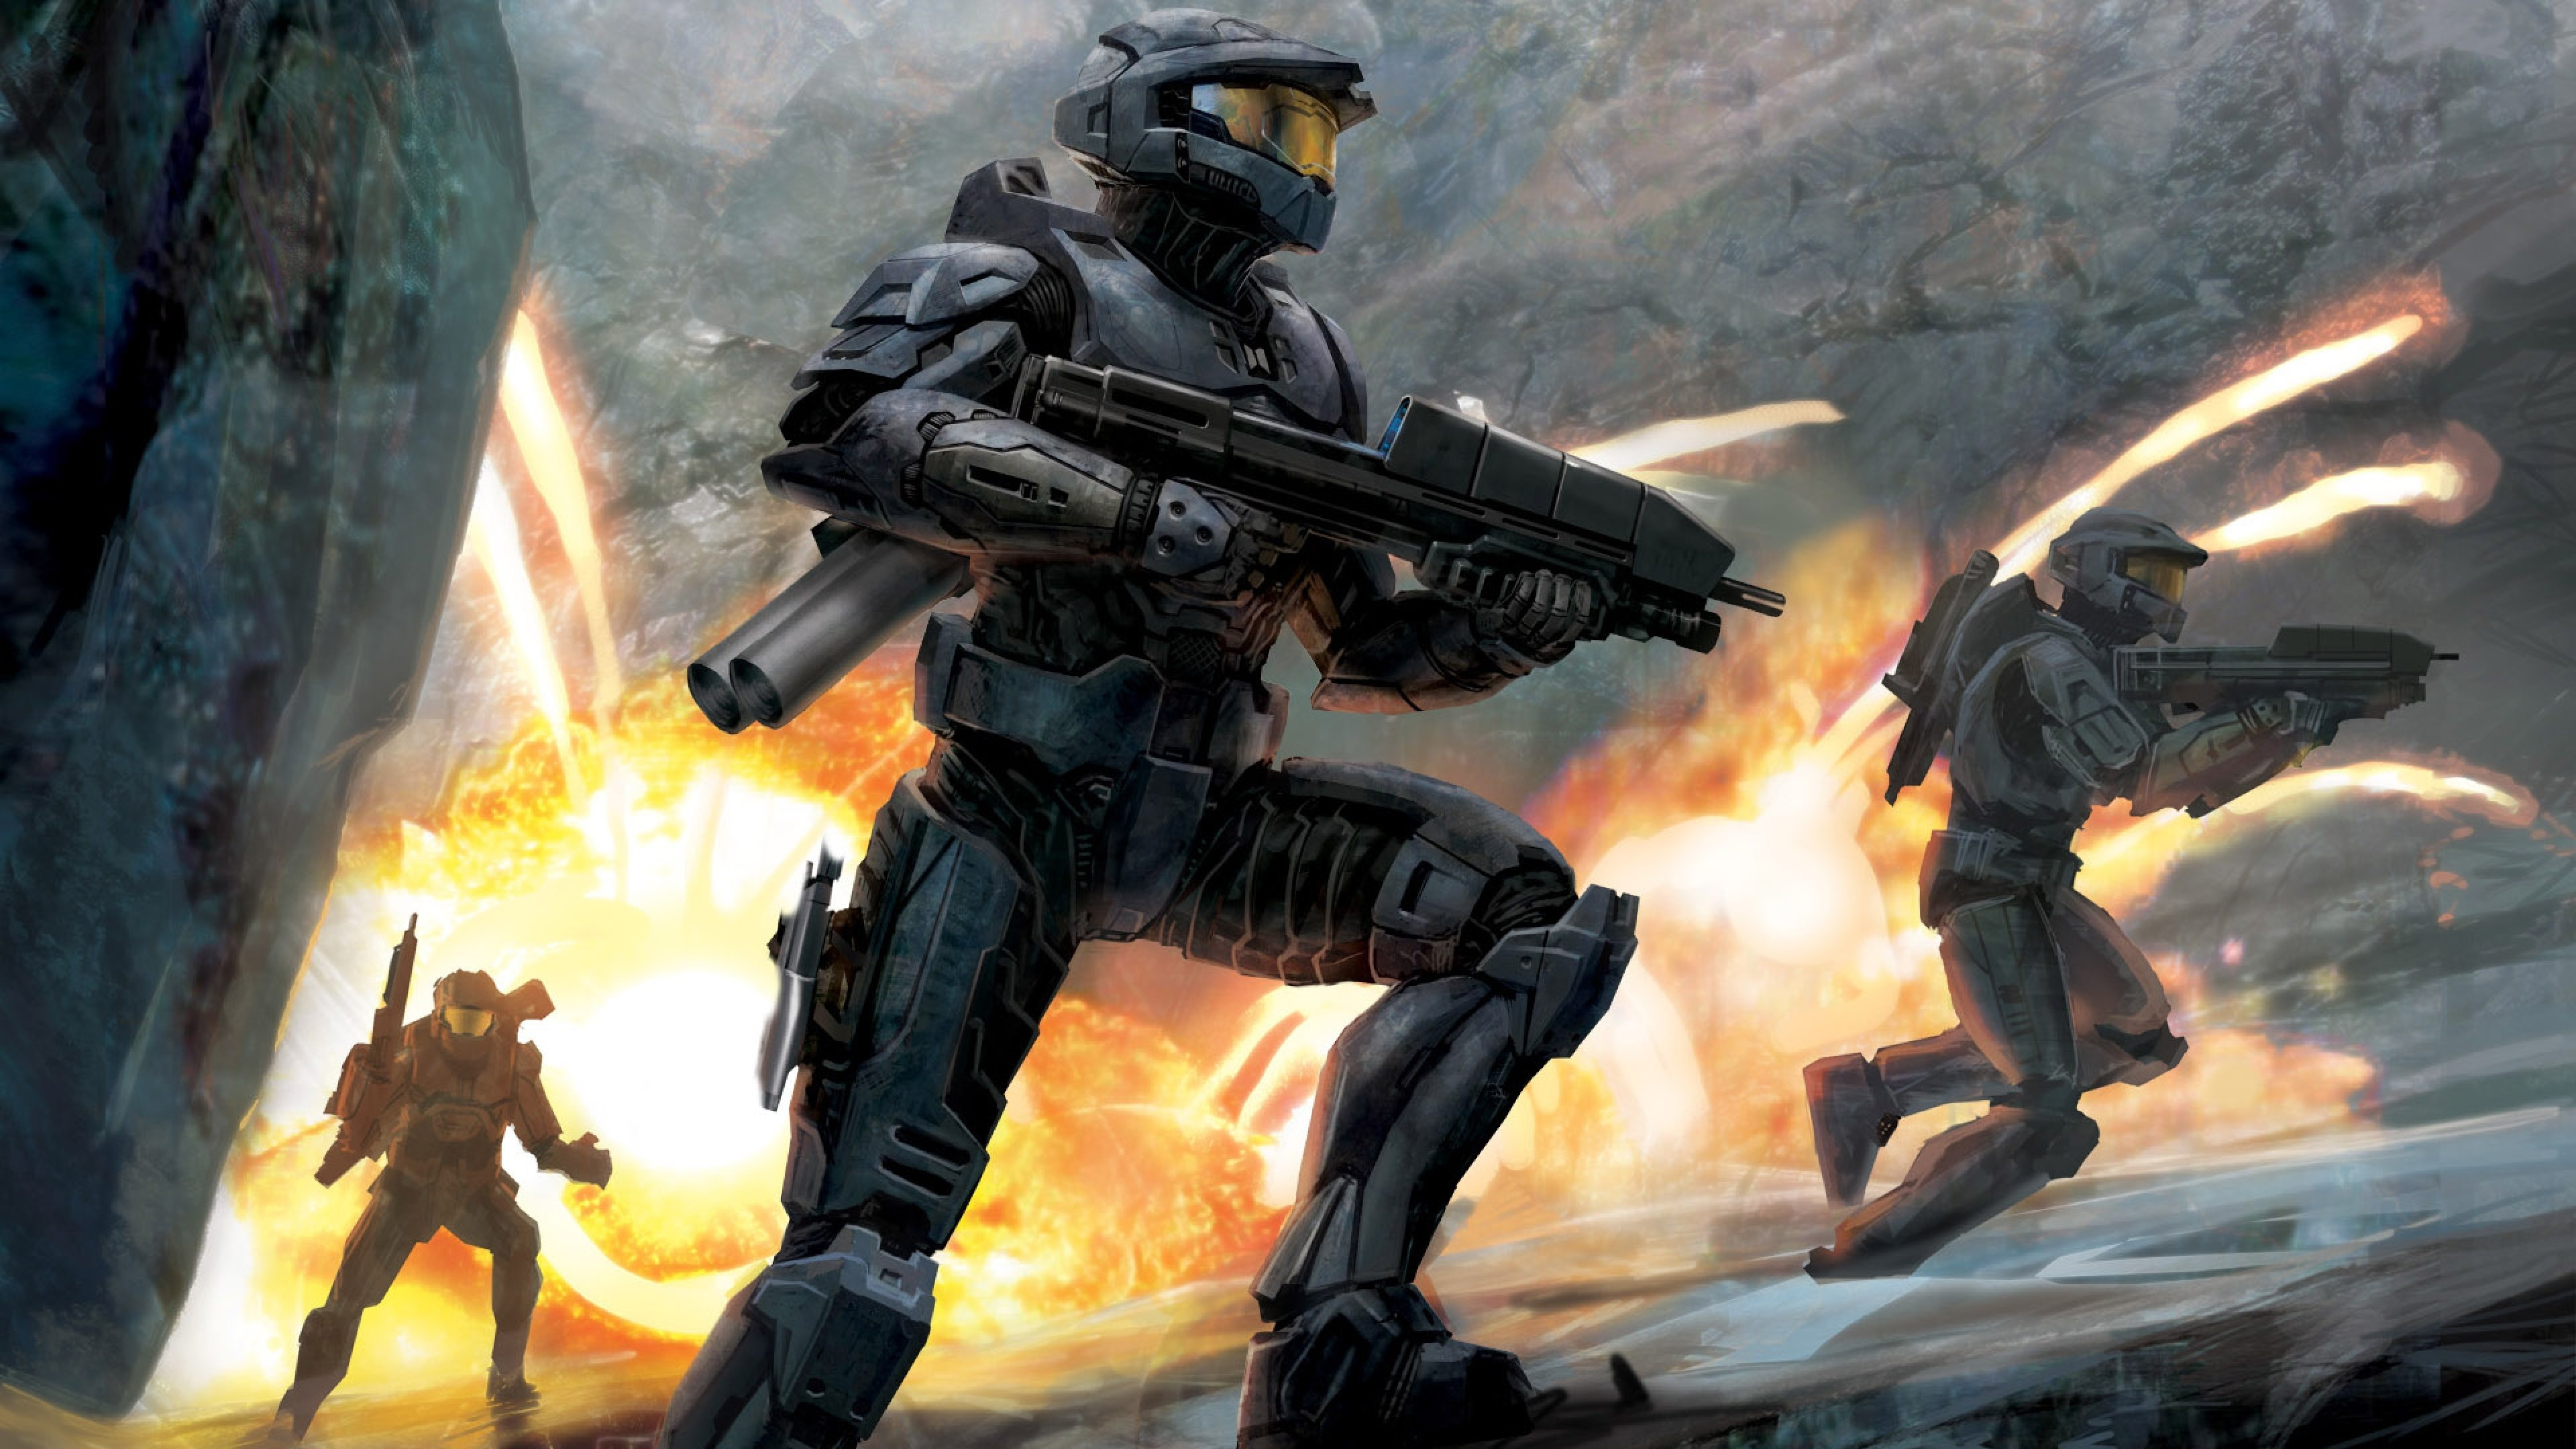 3840x2160 Preview wallpaper halo, soldiers, fire, gun